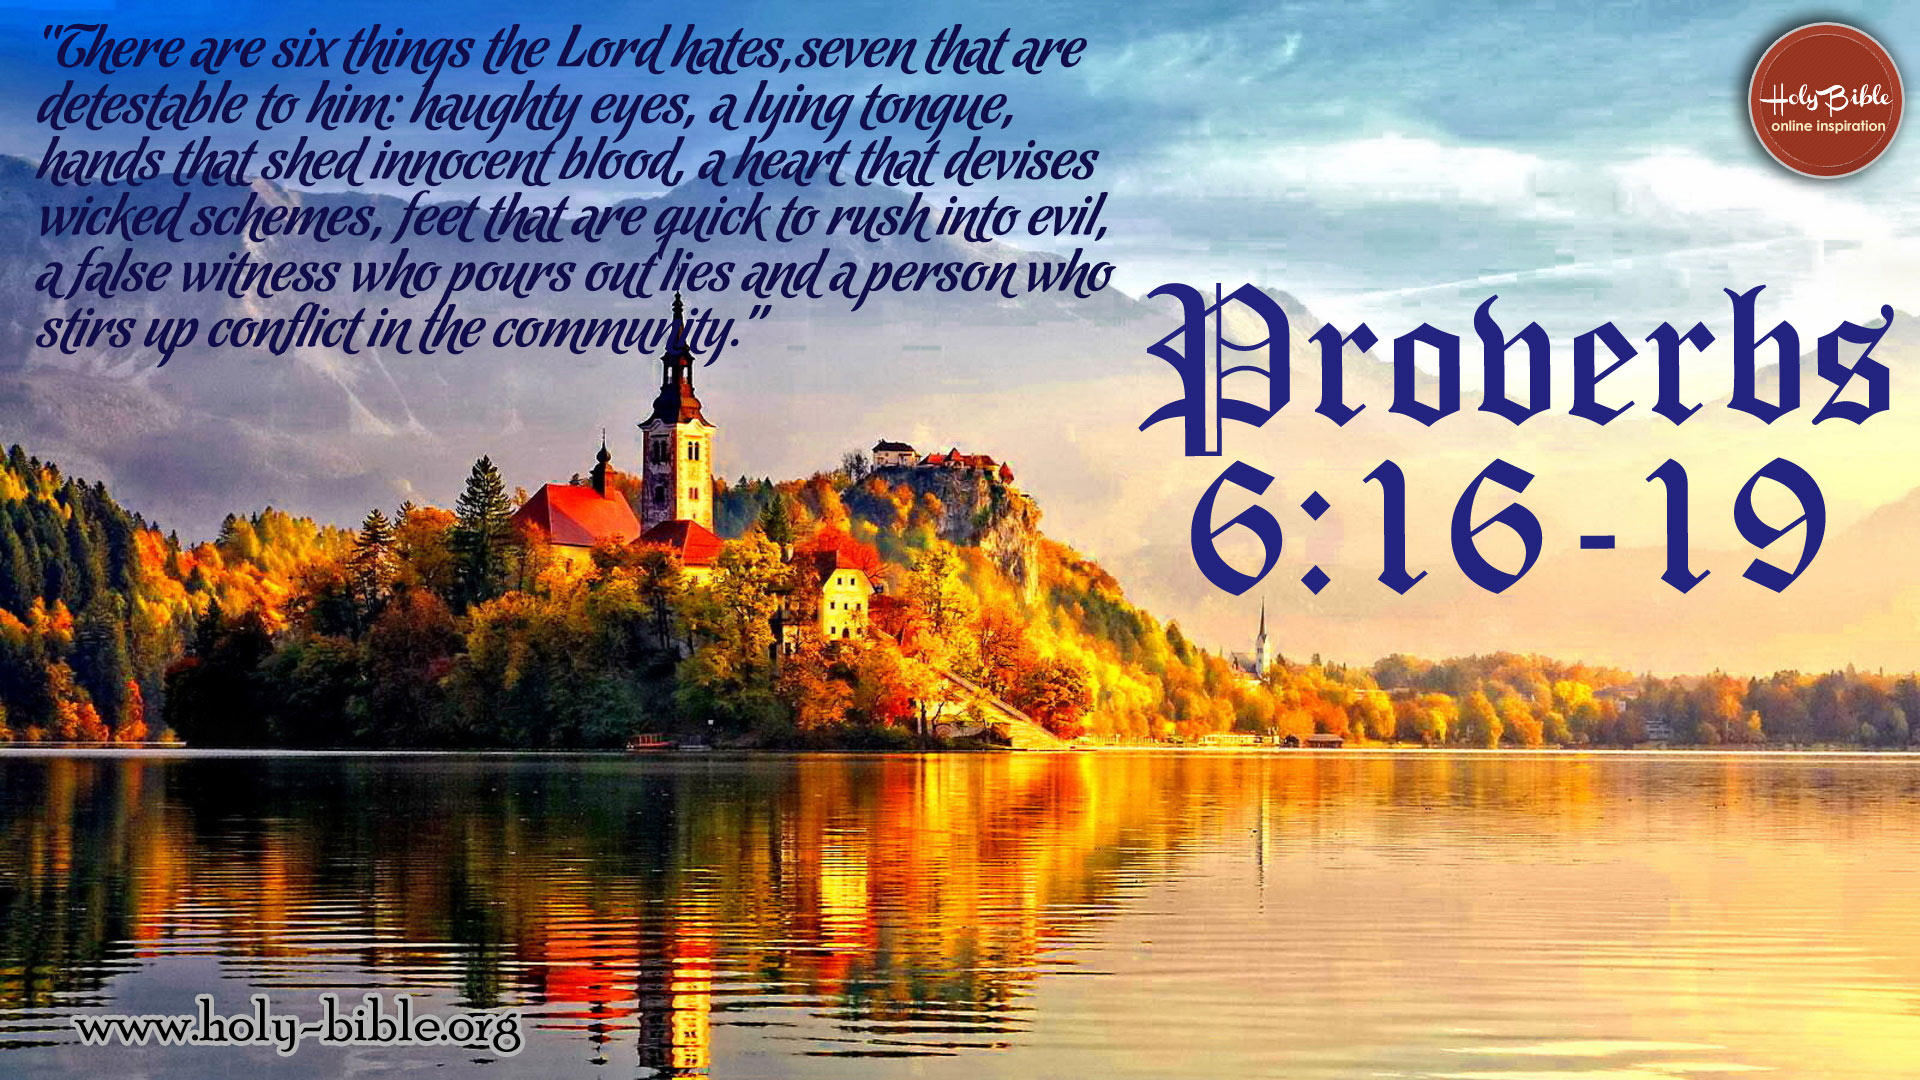 Bible Verse of the day - Proverbs 6:16-19